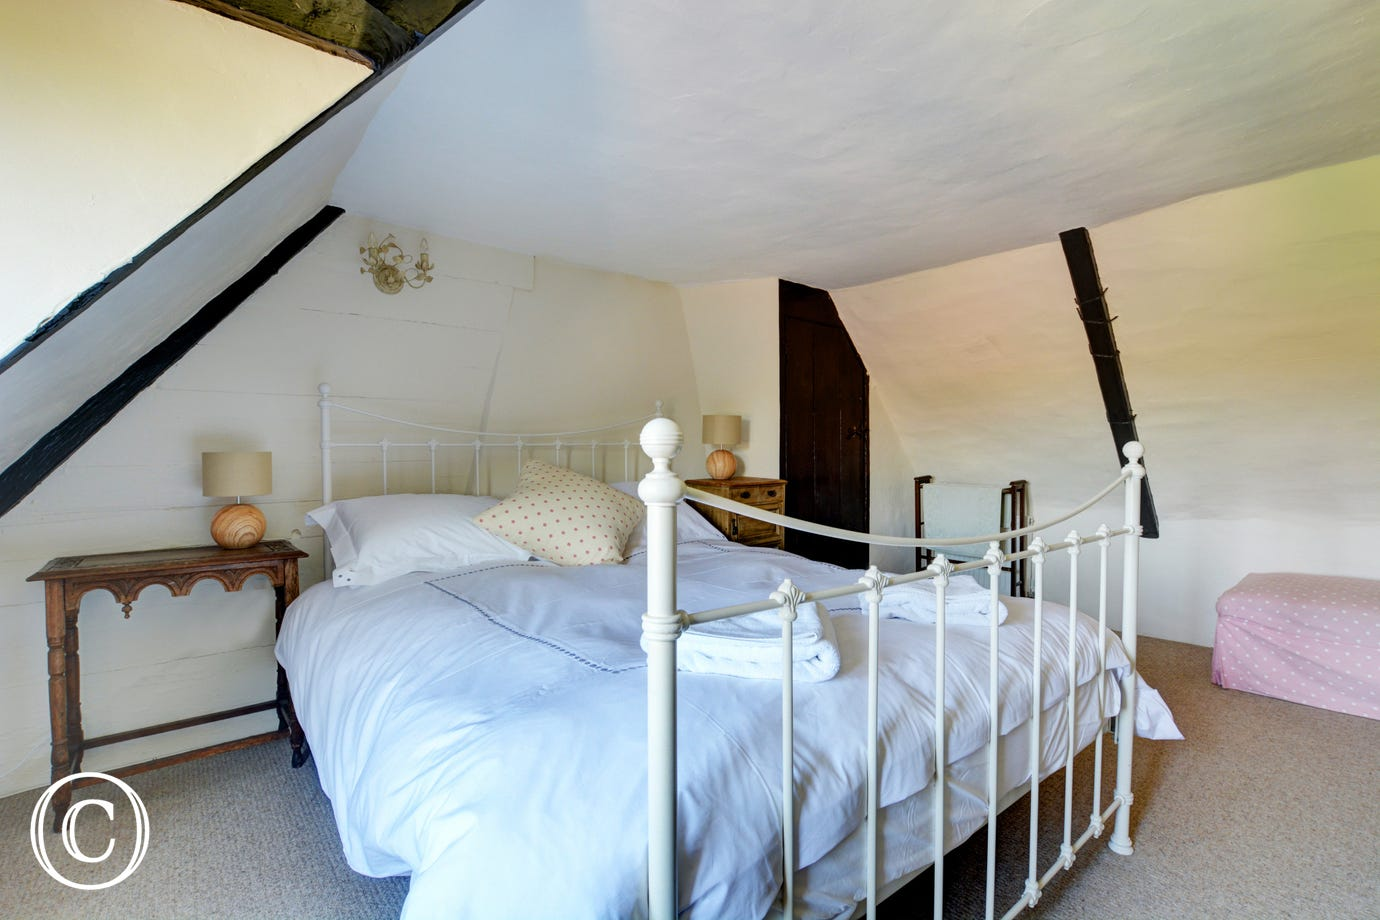 Charming bedroom with a king size bed and views over the fields